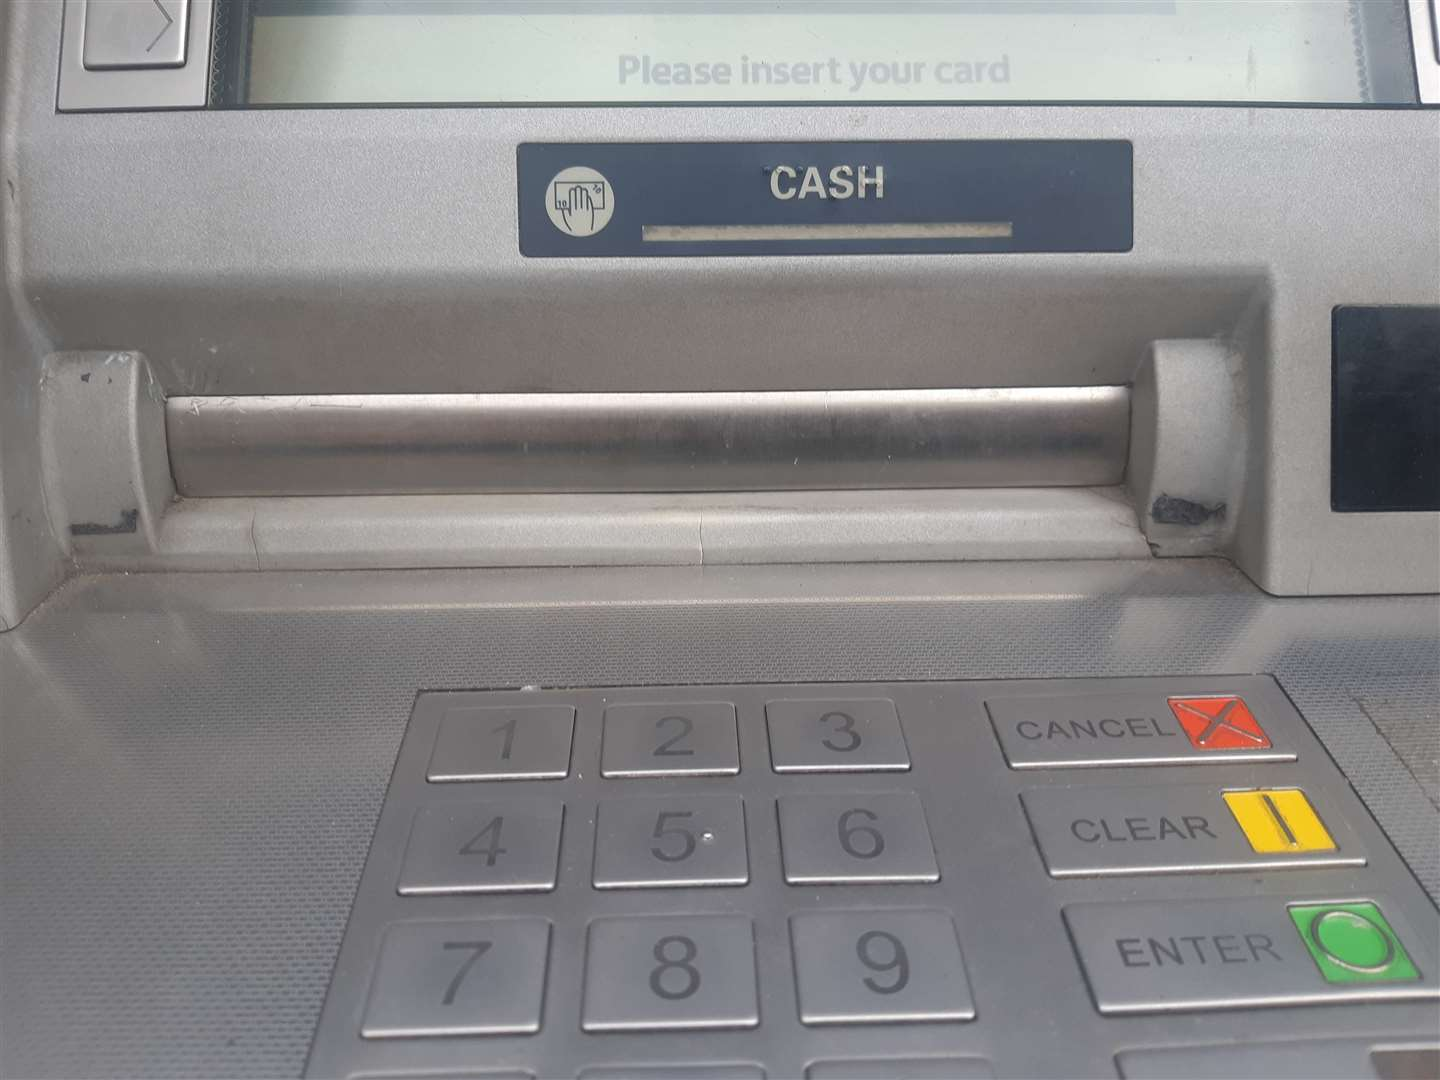 The plastic devices covered the money slot on the cash machine